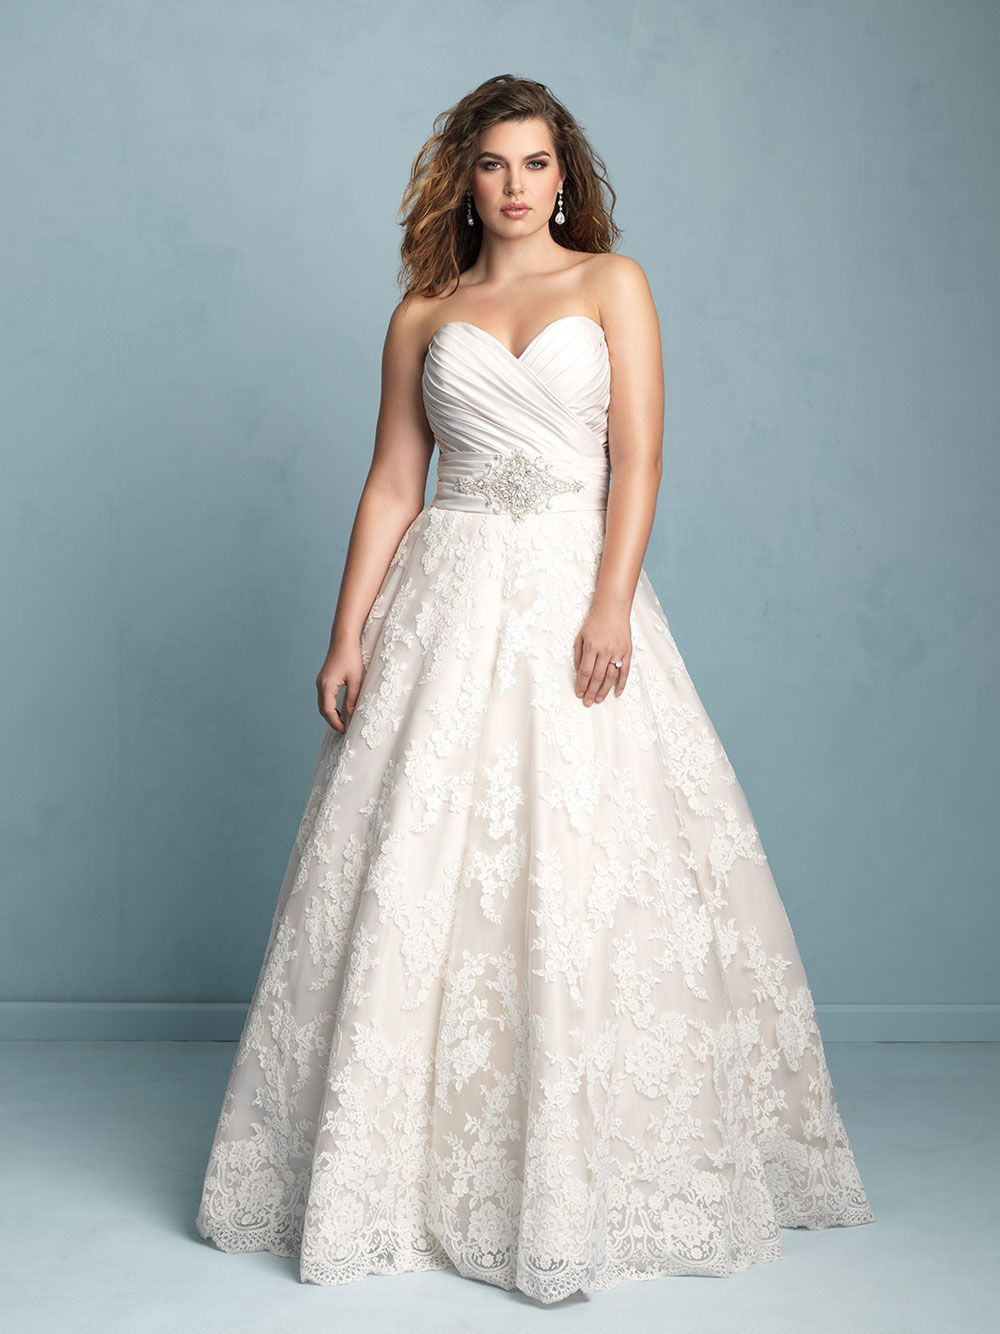 Unique Ladies Plus Size Wedding Outfits Adornment - All Wedding ...